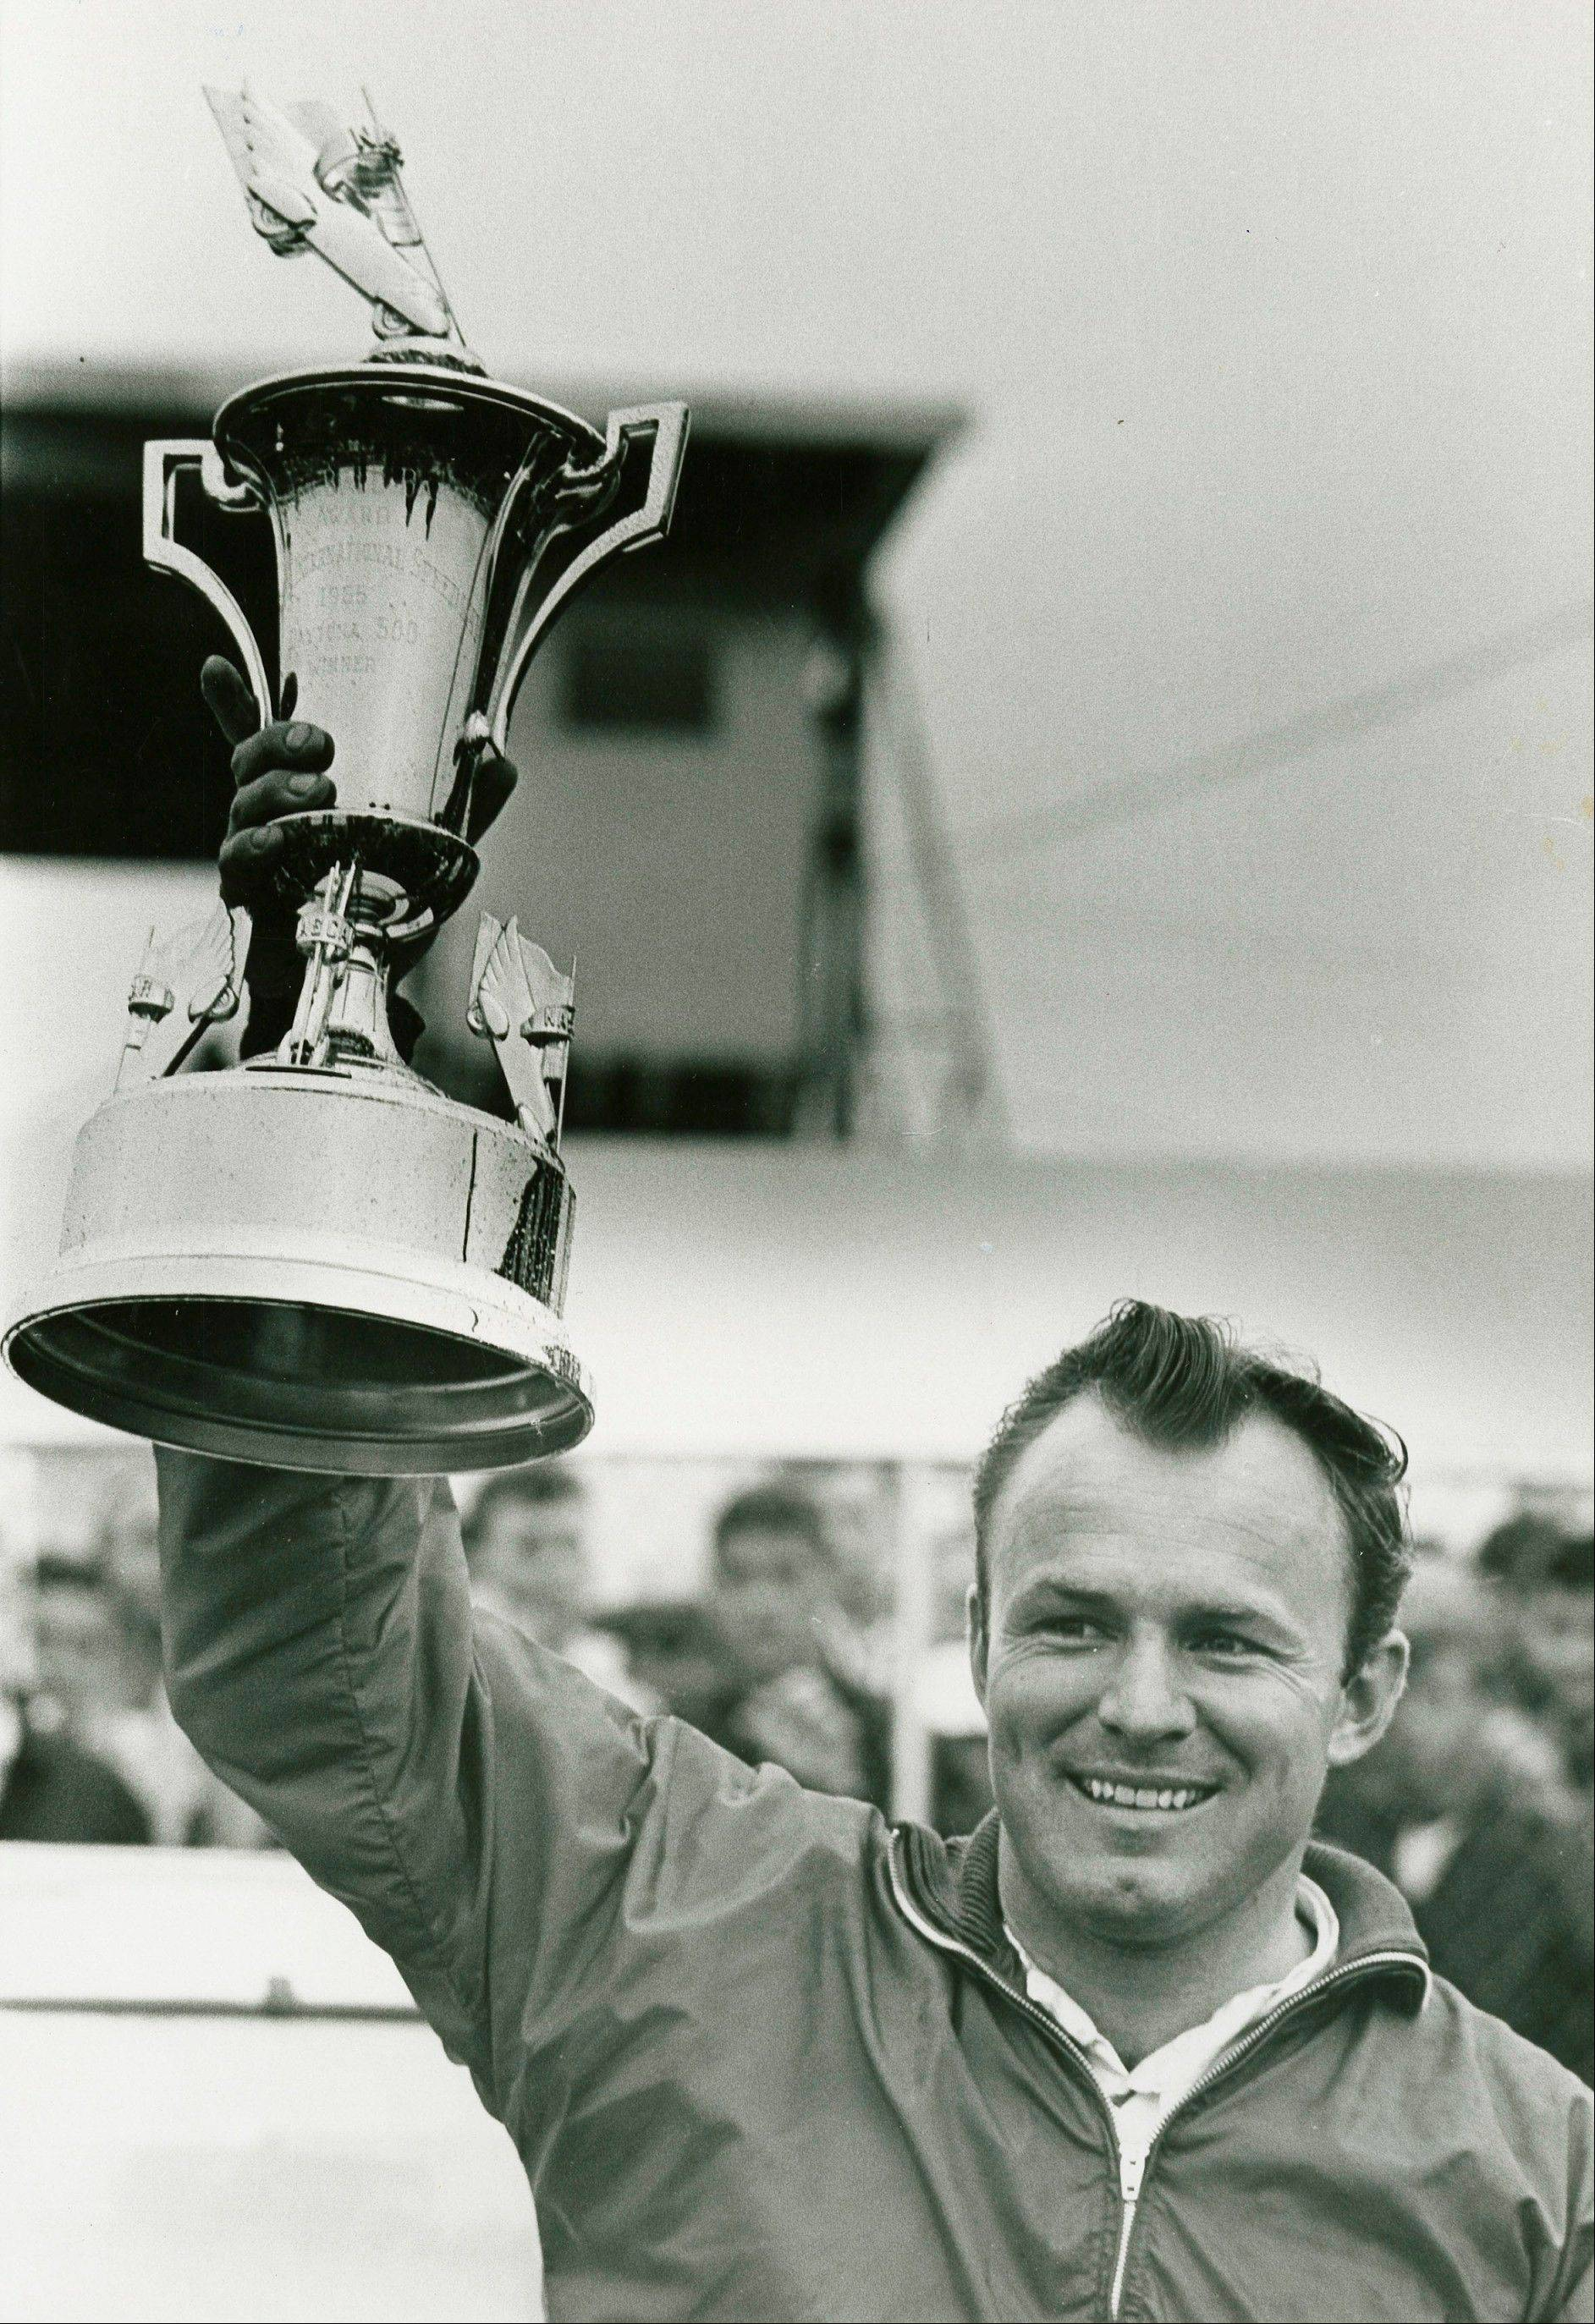 Elmhurst native Fred Lorenzen hoists his trophy after winning the 1965 Daytona 500.